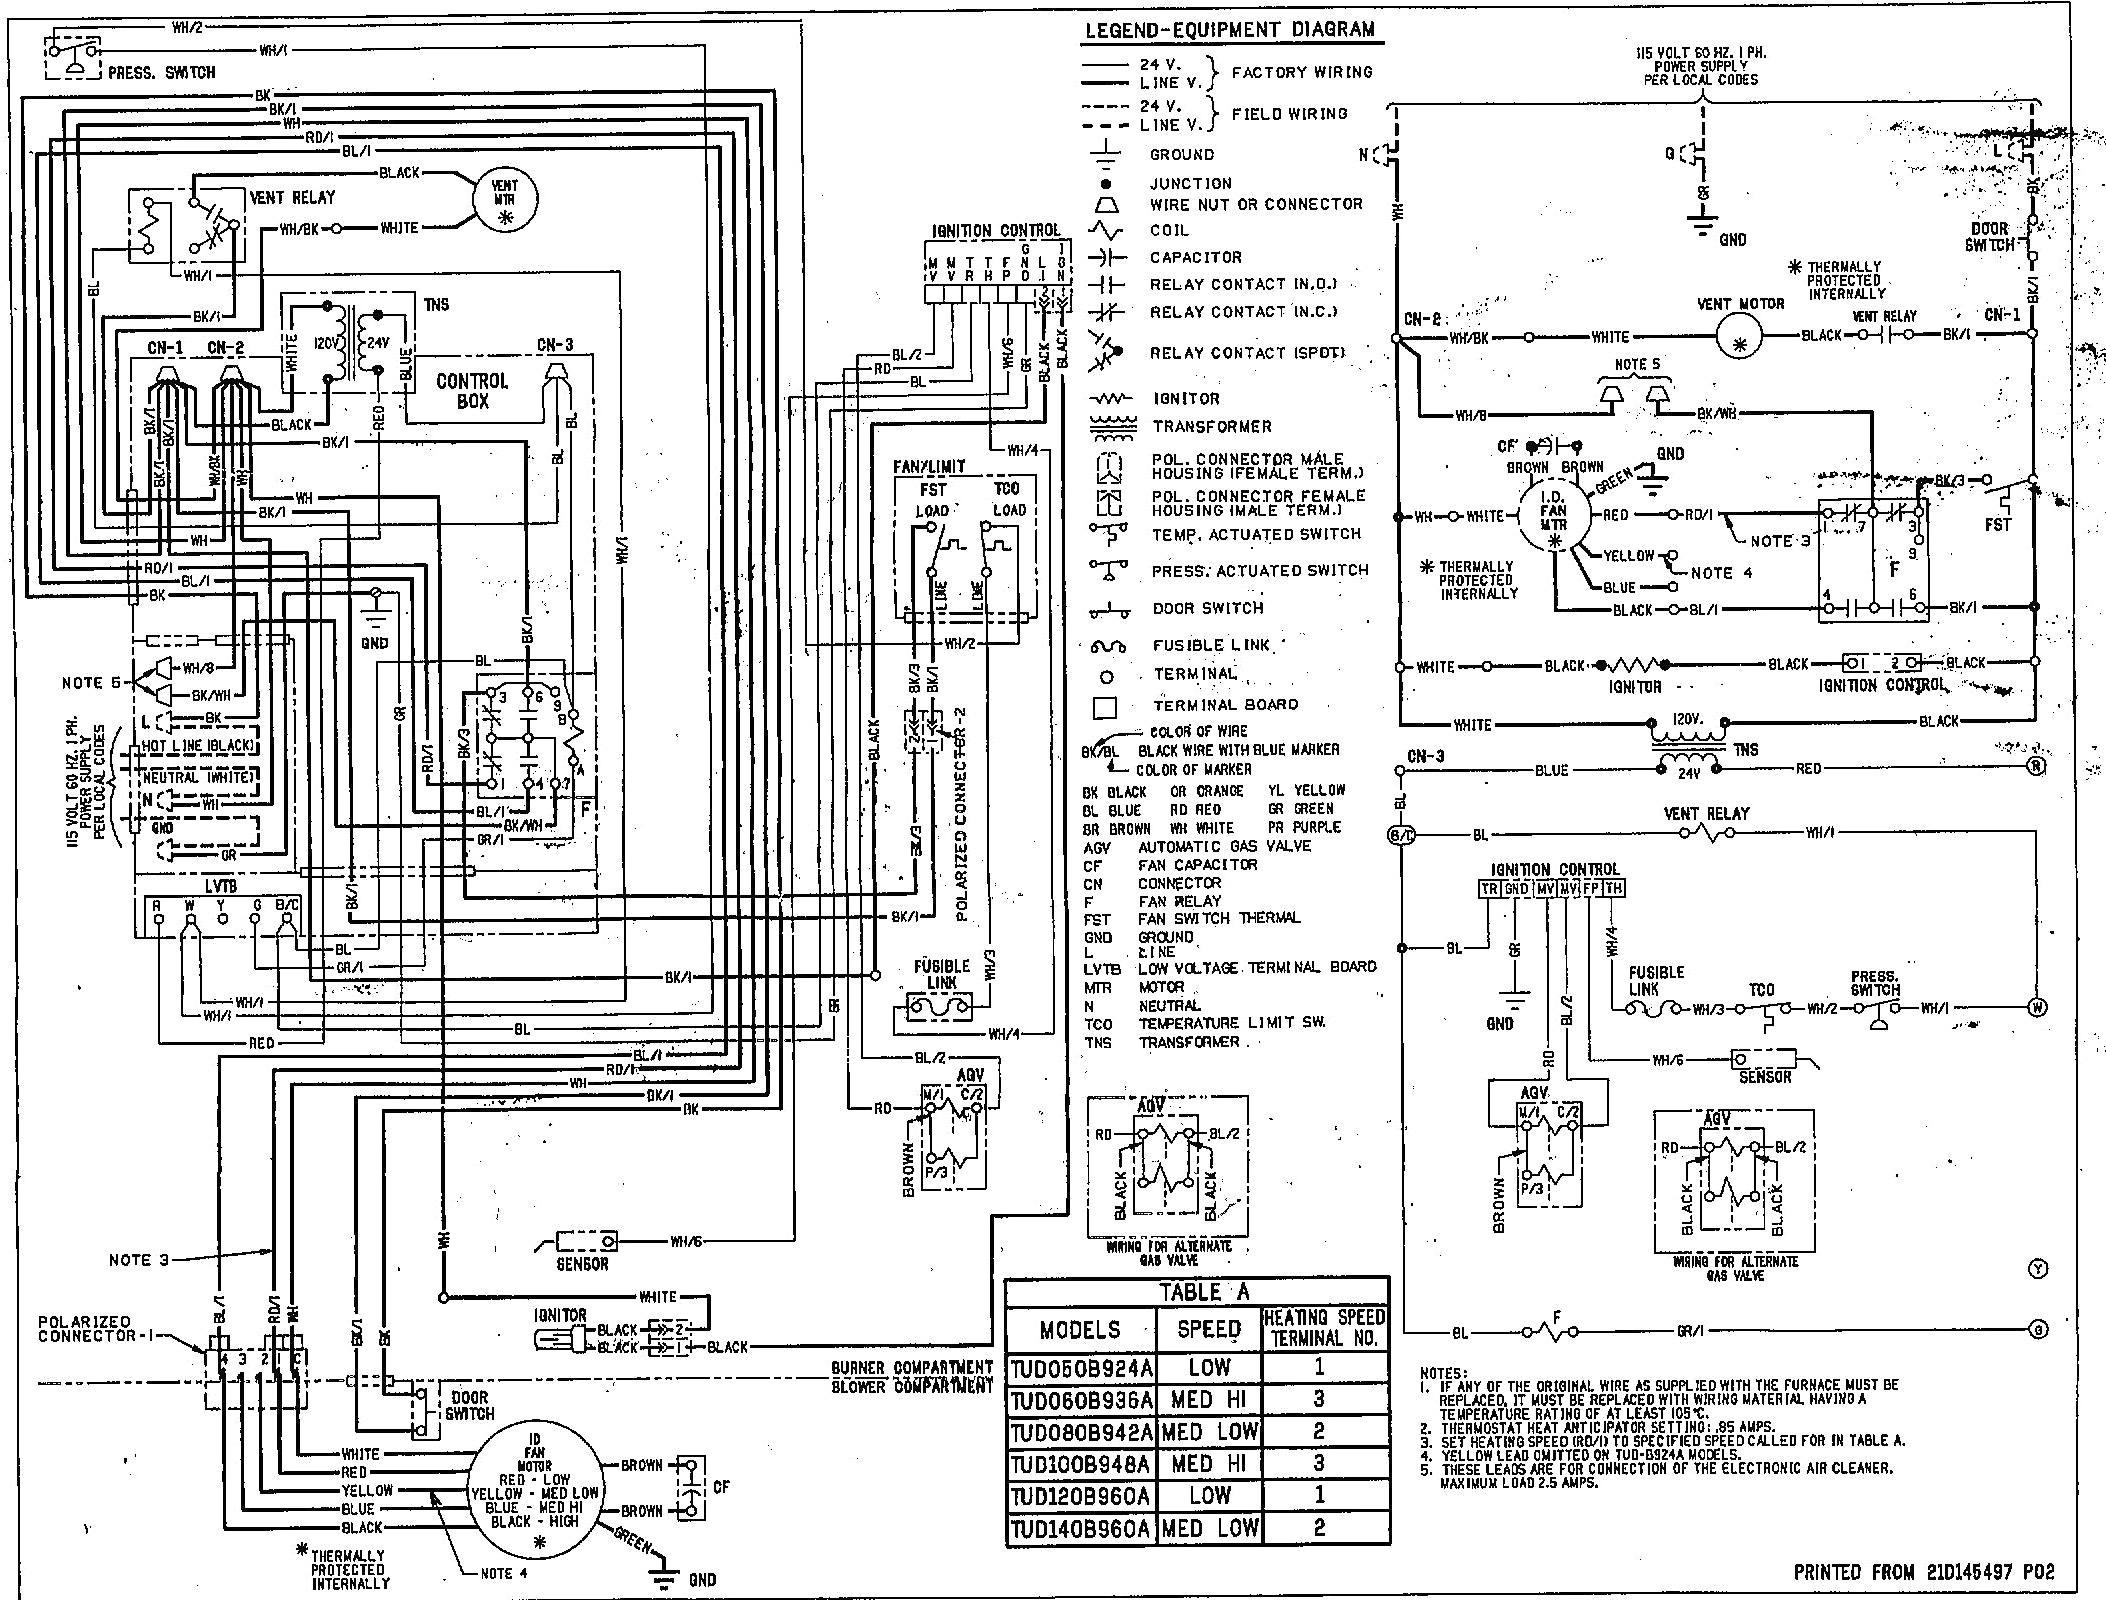 Trane Furnace Wiring Diagram - Rheem Hvac Wiring Diagram Best Trane Furnace Wiring Diagram Best Rheem thermostat Wiring Diagram 18c